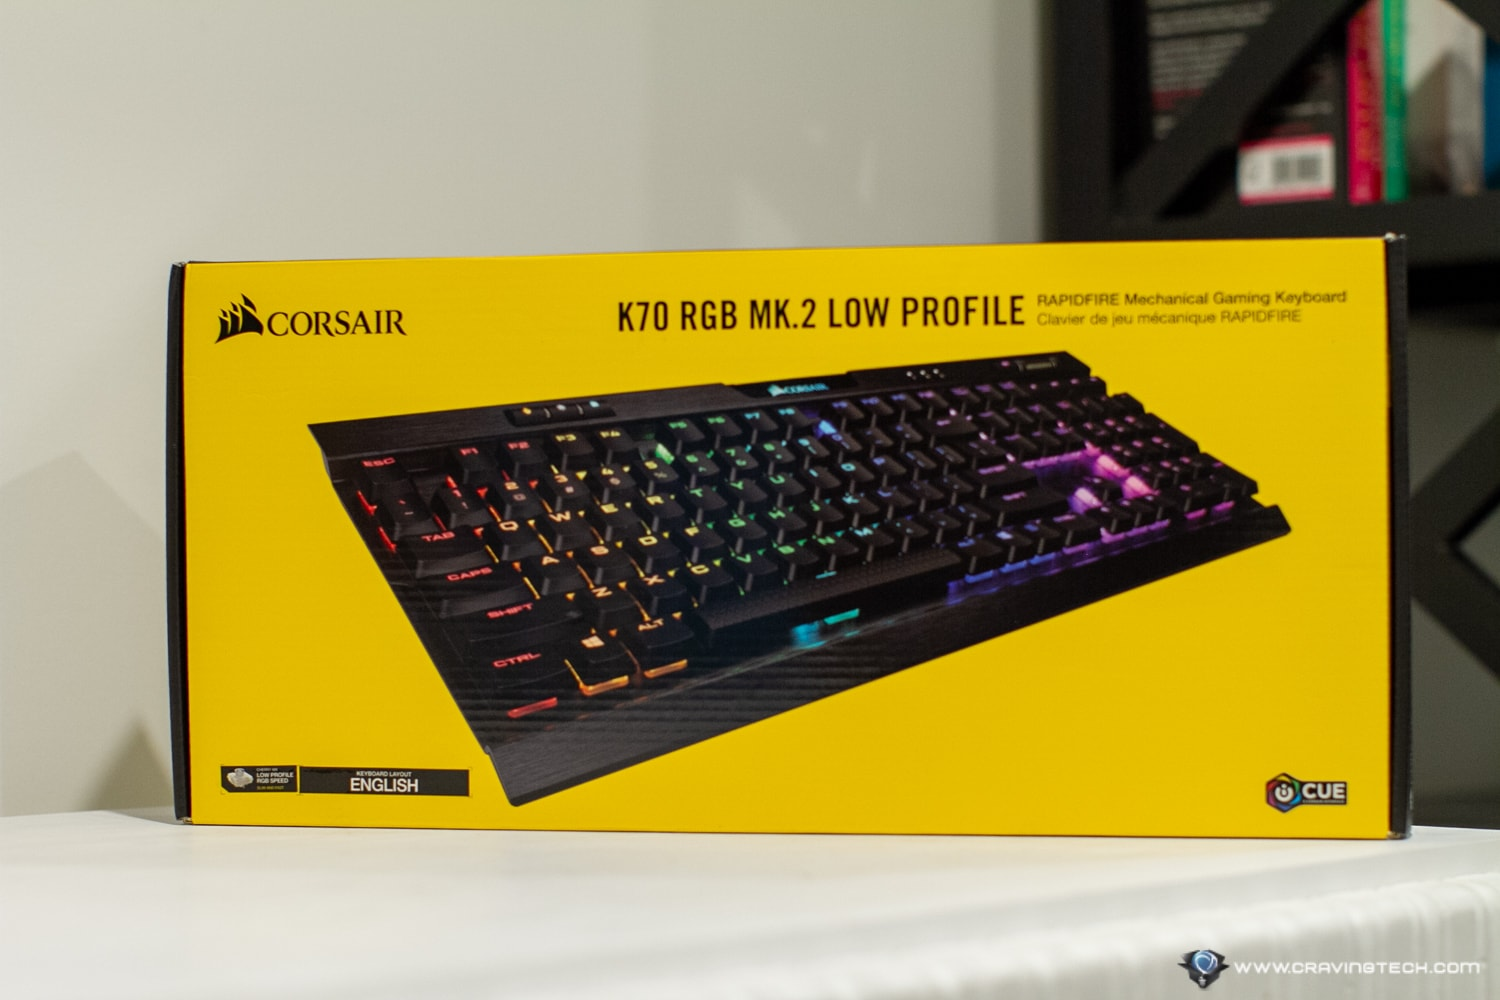 CORSAIR K70 RGB MK 2 LOW PROFILE Gaming Keyboard Review